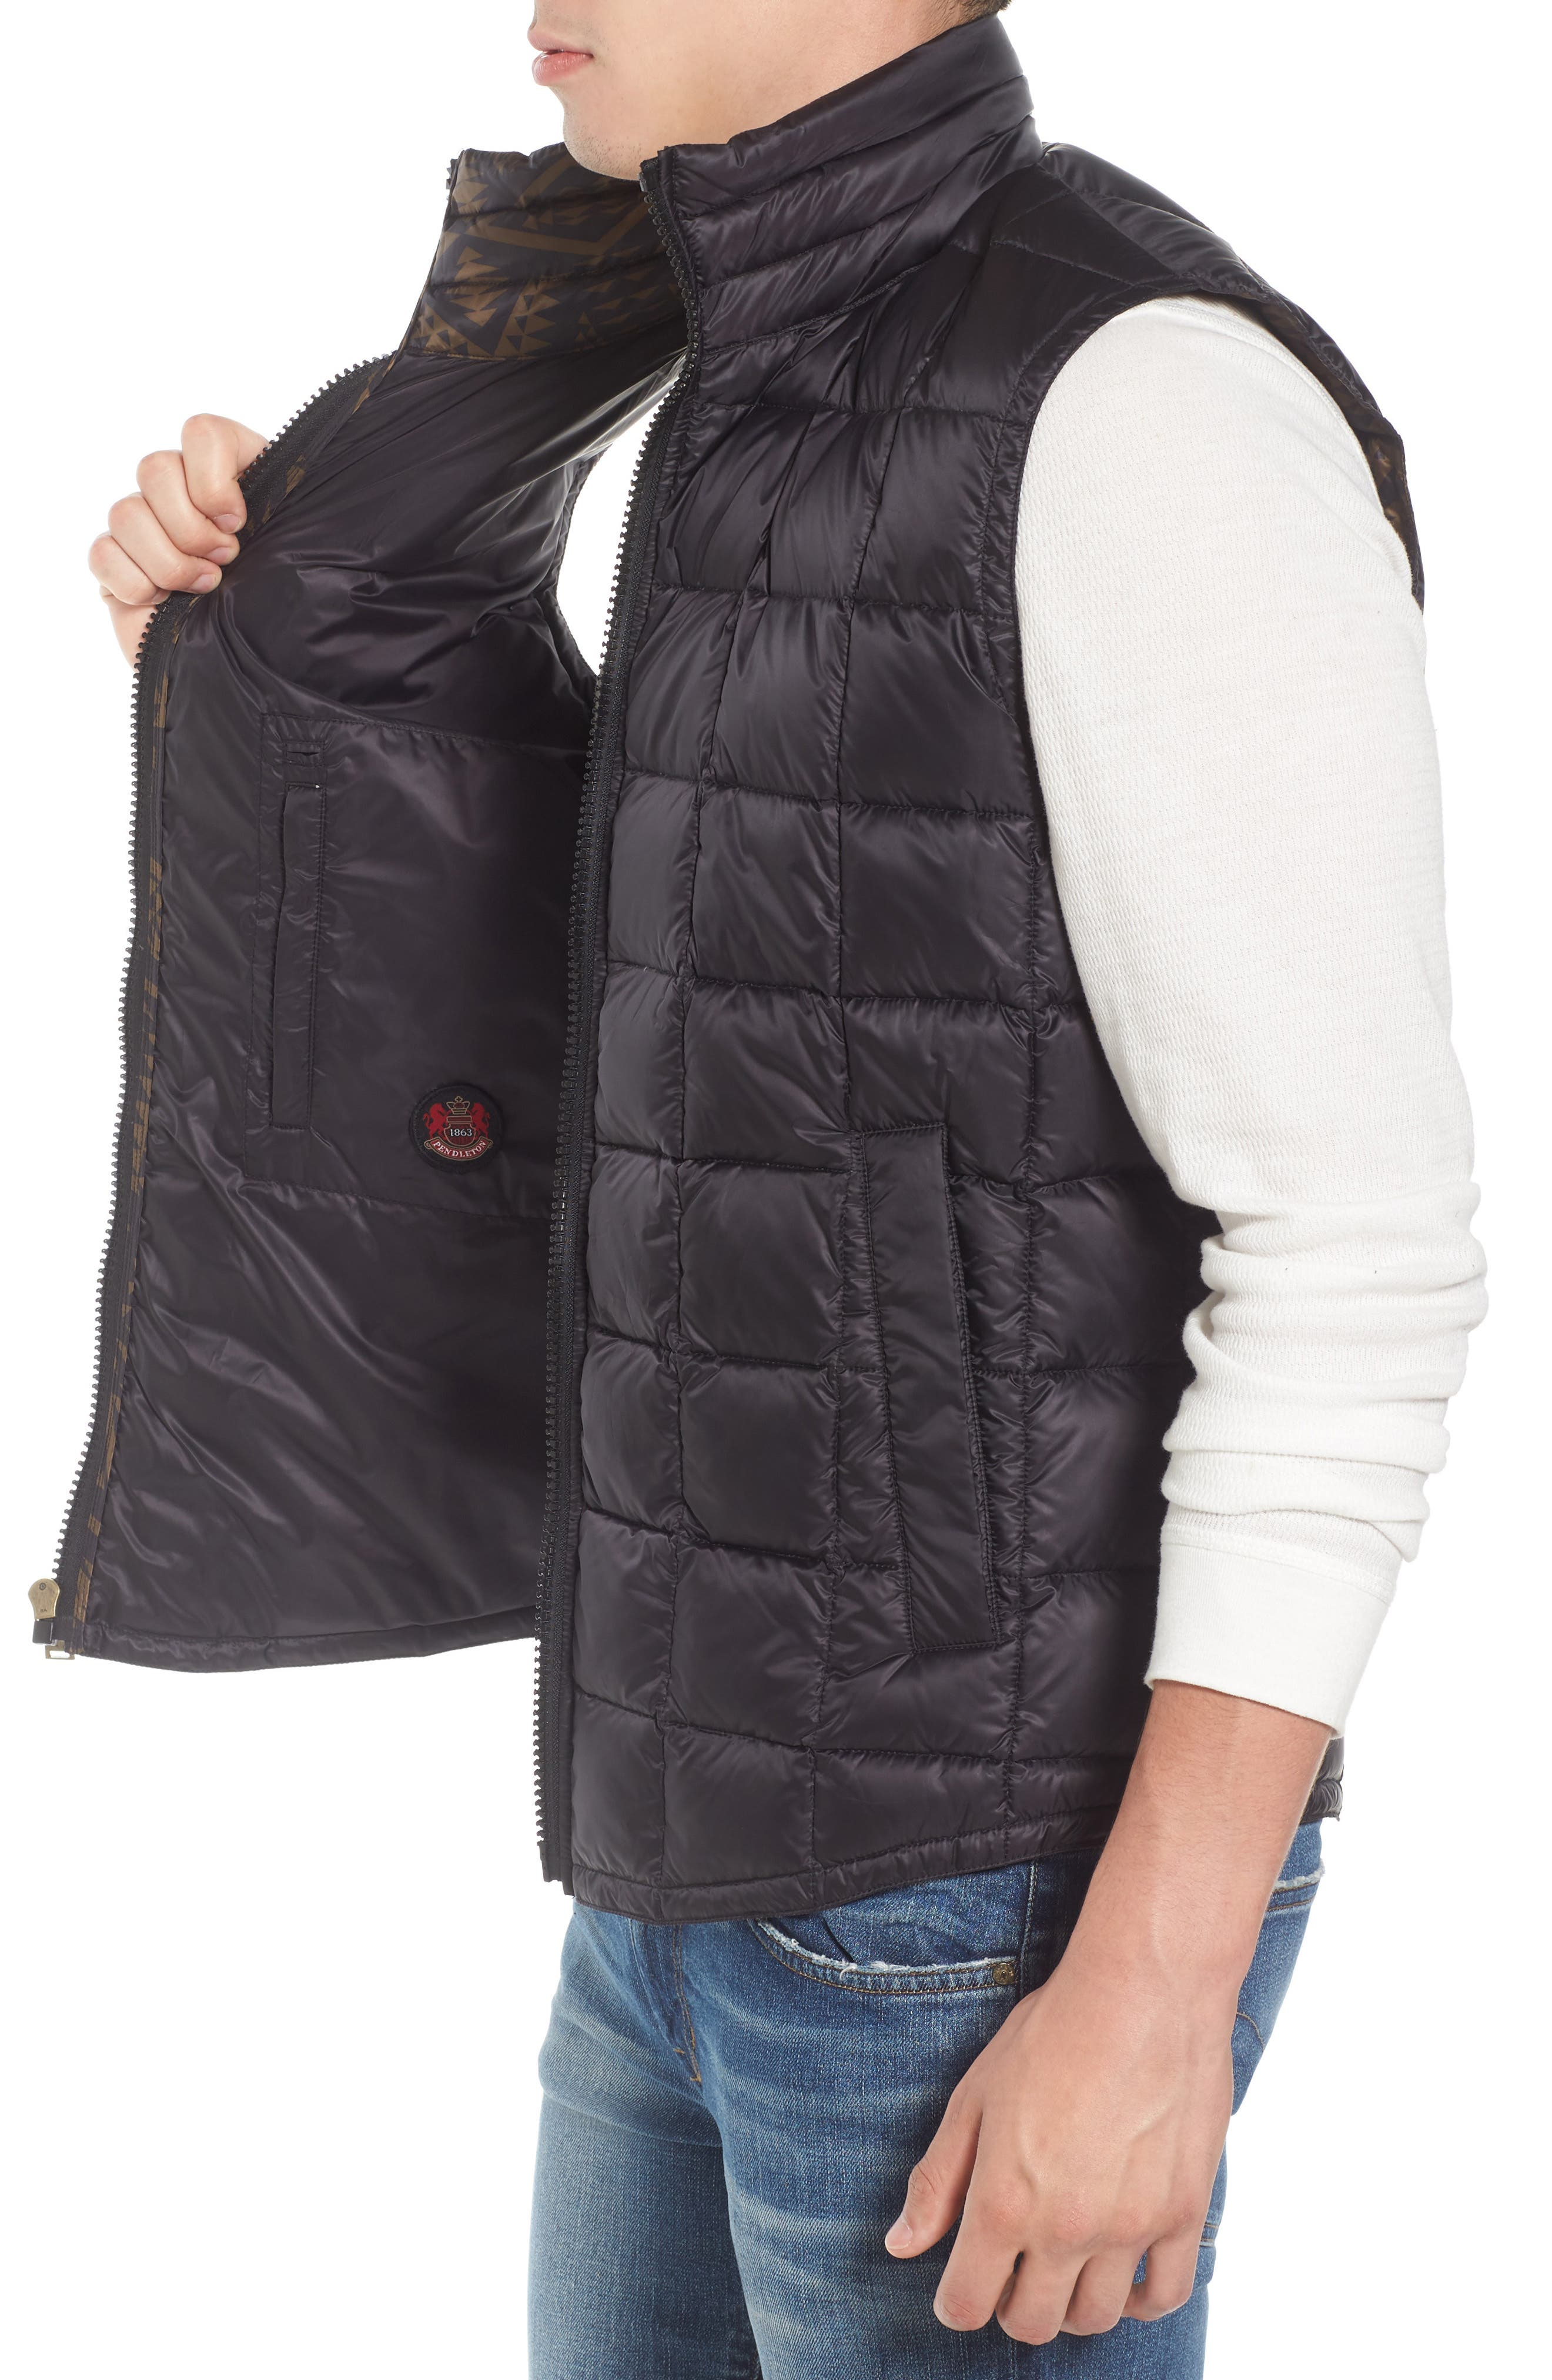 Billings Down Vest,                             Alternate thumbnail 3, color,                             001